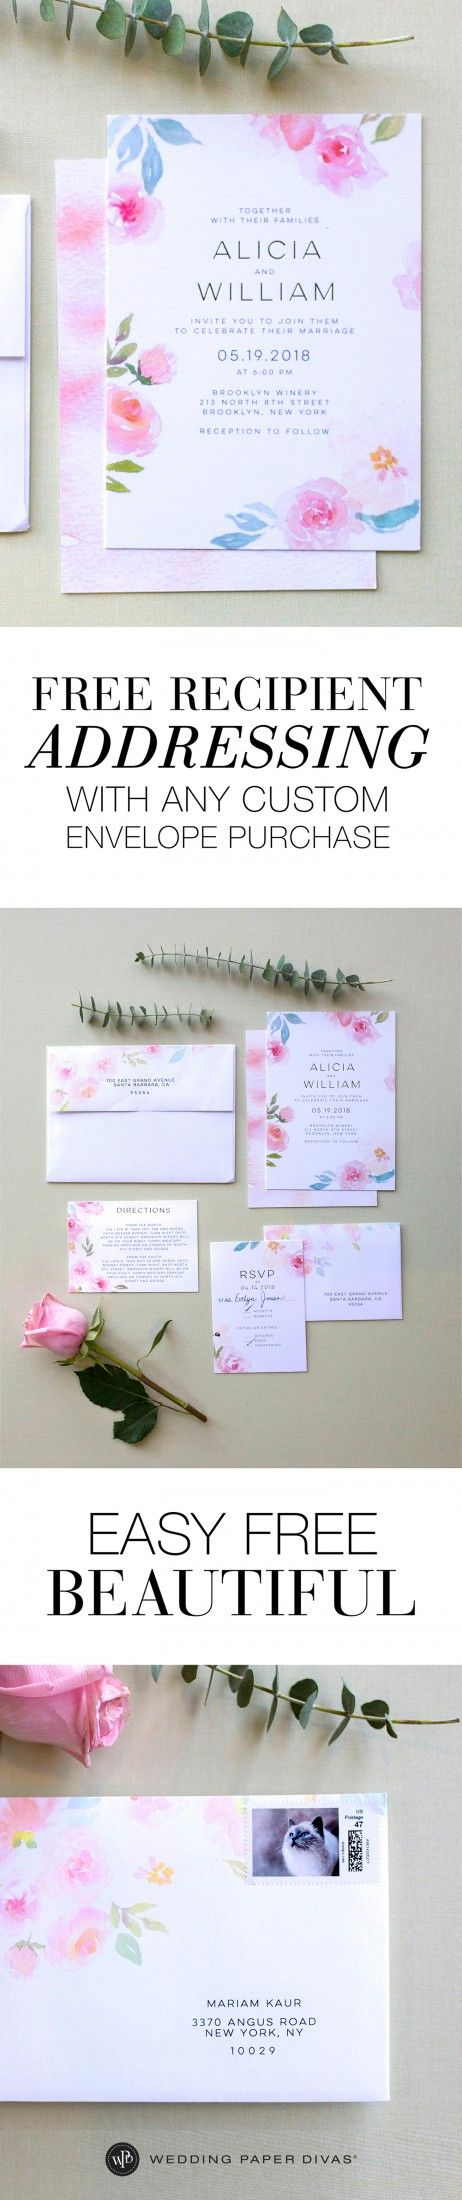 797 best Rustic Wedding Invitations images on Pinterest | Rustic ...